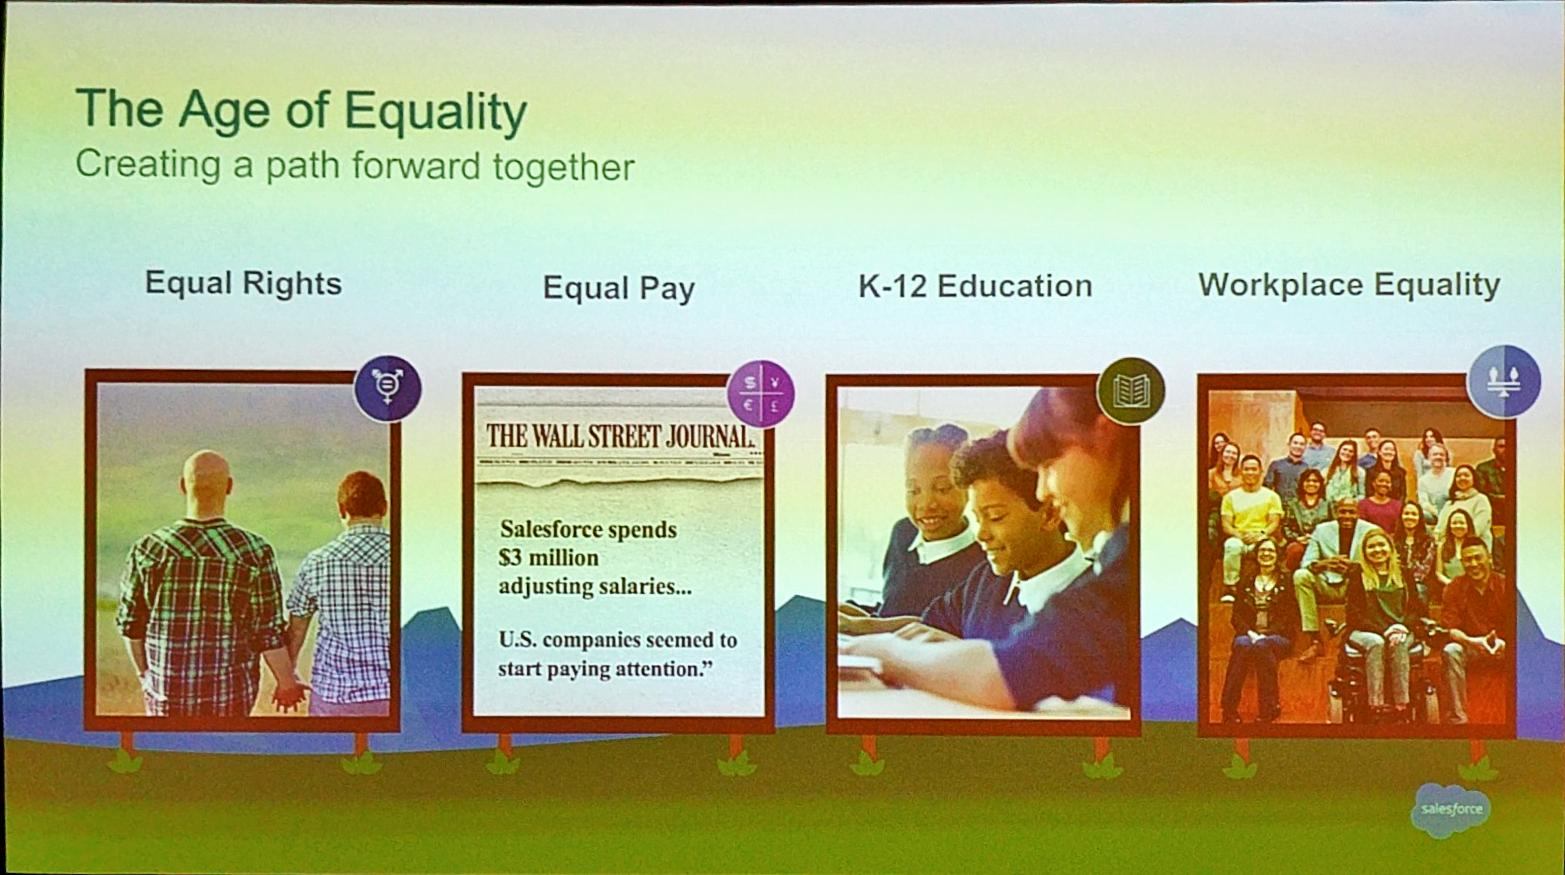 4 pillars to propel the Age of Equality @salesforce  - Equal rights - Equal pay - K-12 Education  - Workplace Equality  #SalesforceAR https://t.co/VpHIH66z3Y